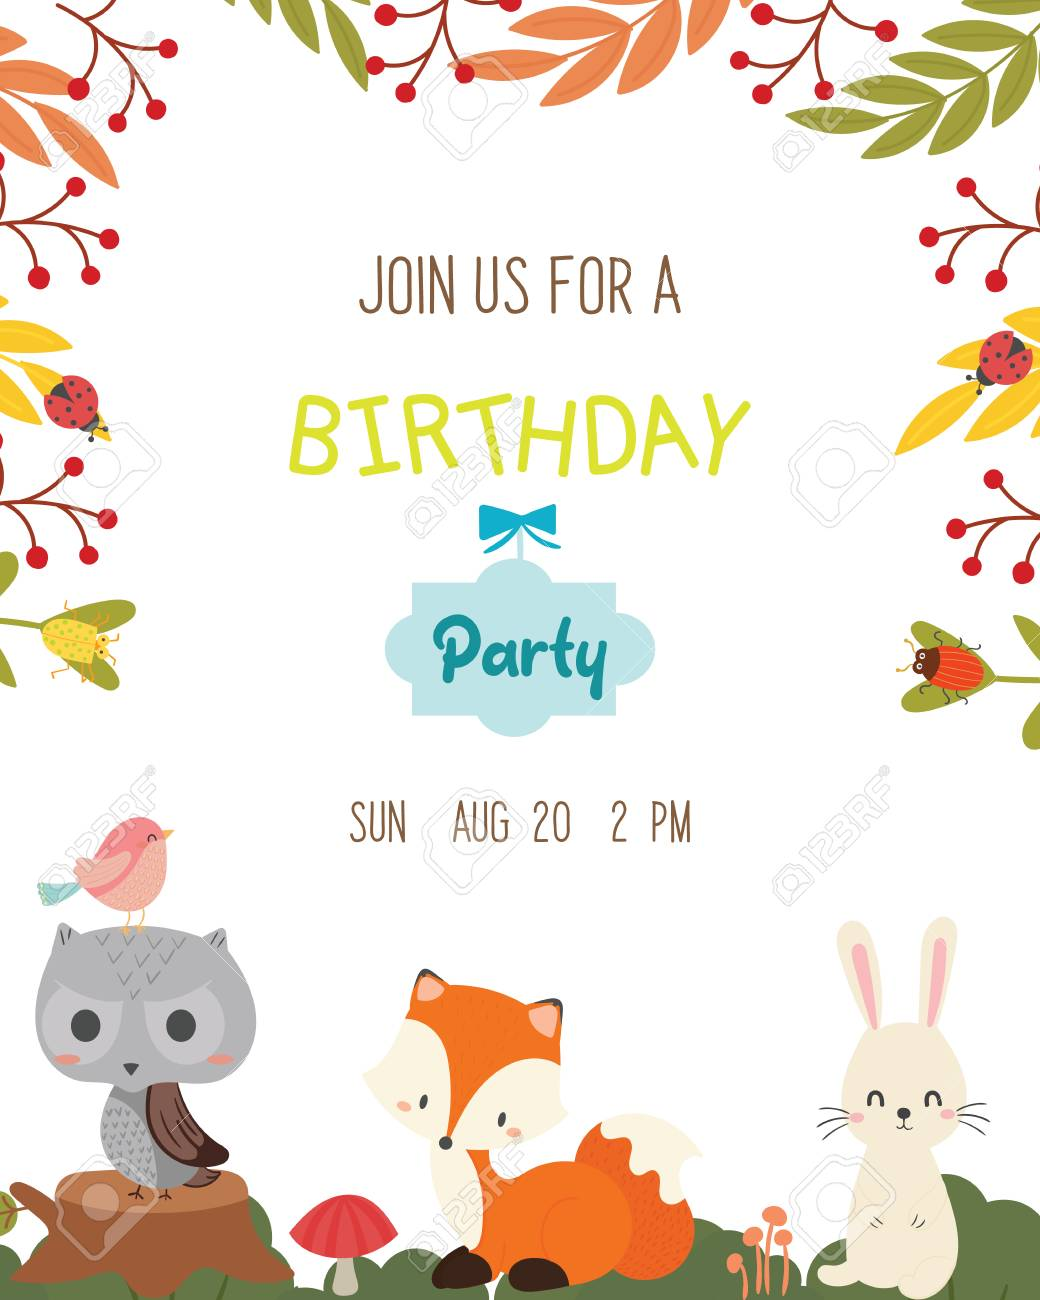 birthday invitation card clipart #6